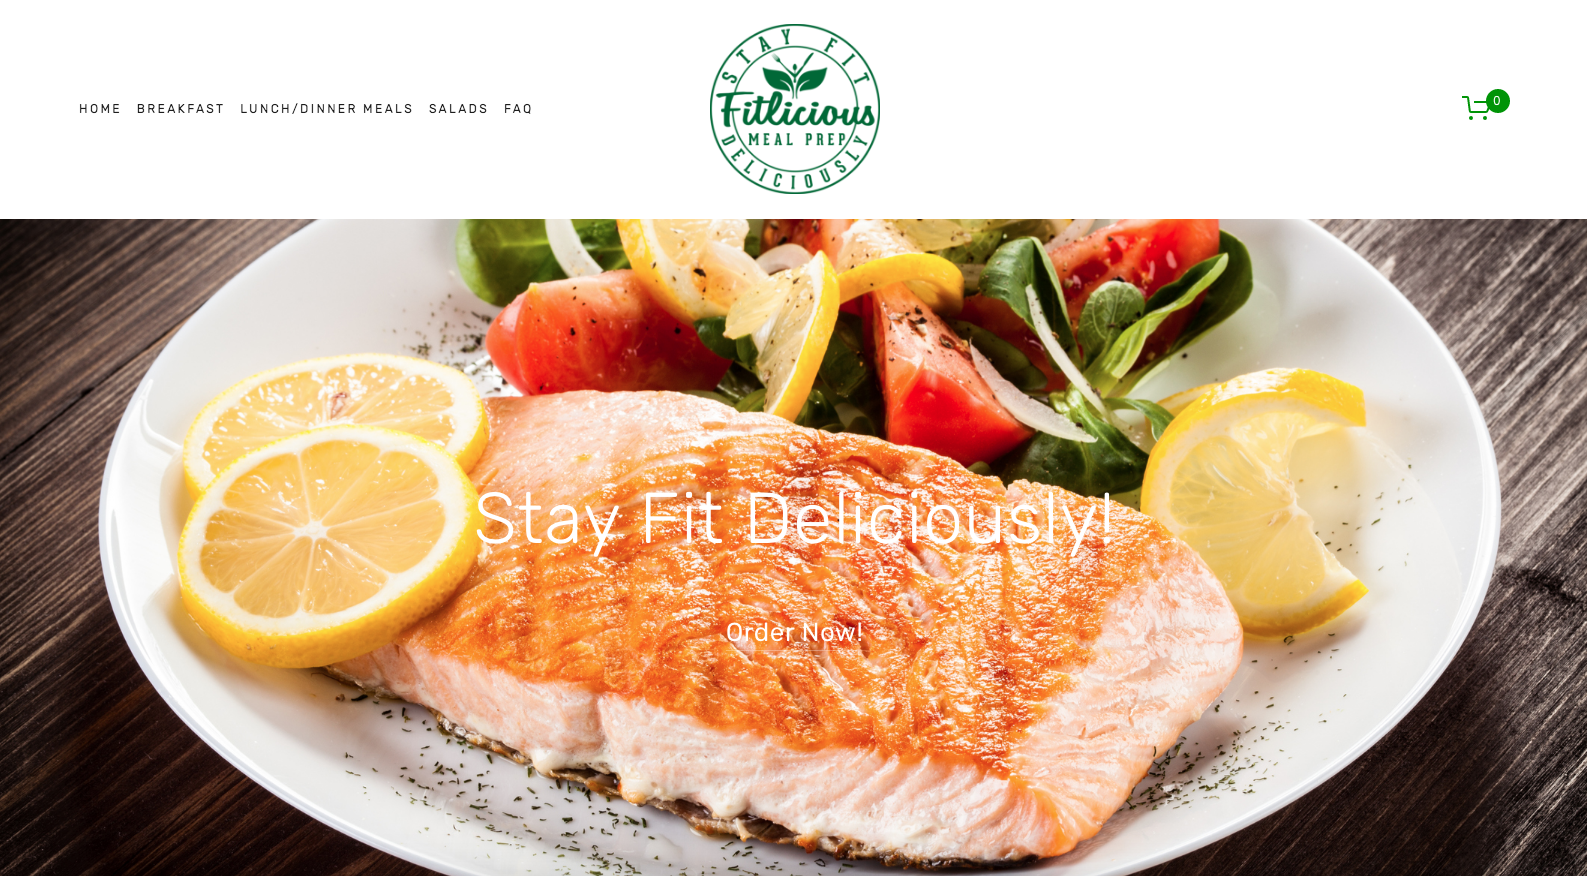 eCommerce website for a meal prep company featuring parallax scrolling, HD images, multiple variants when building meals, and popup email form.